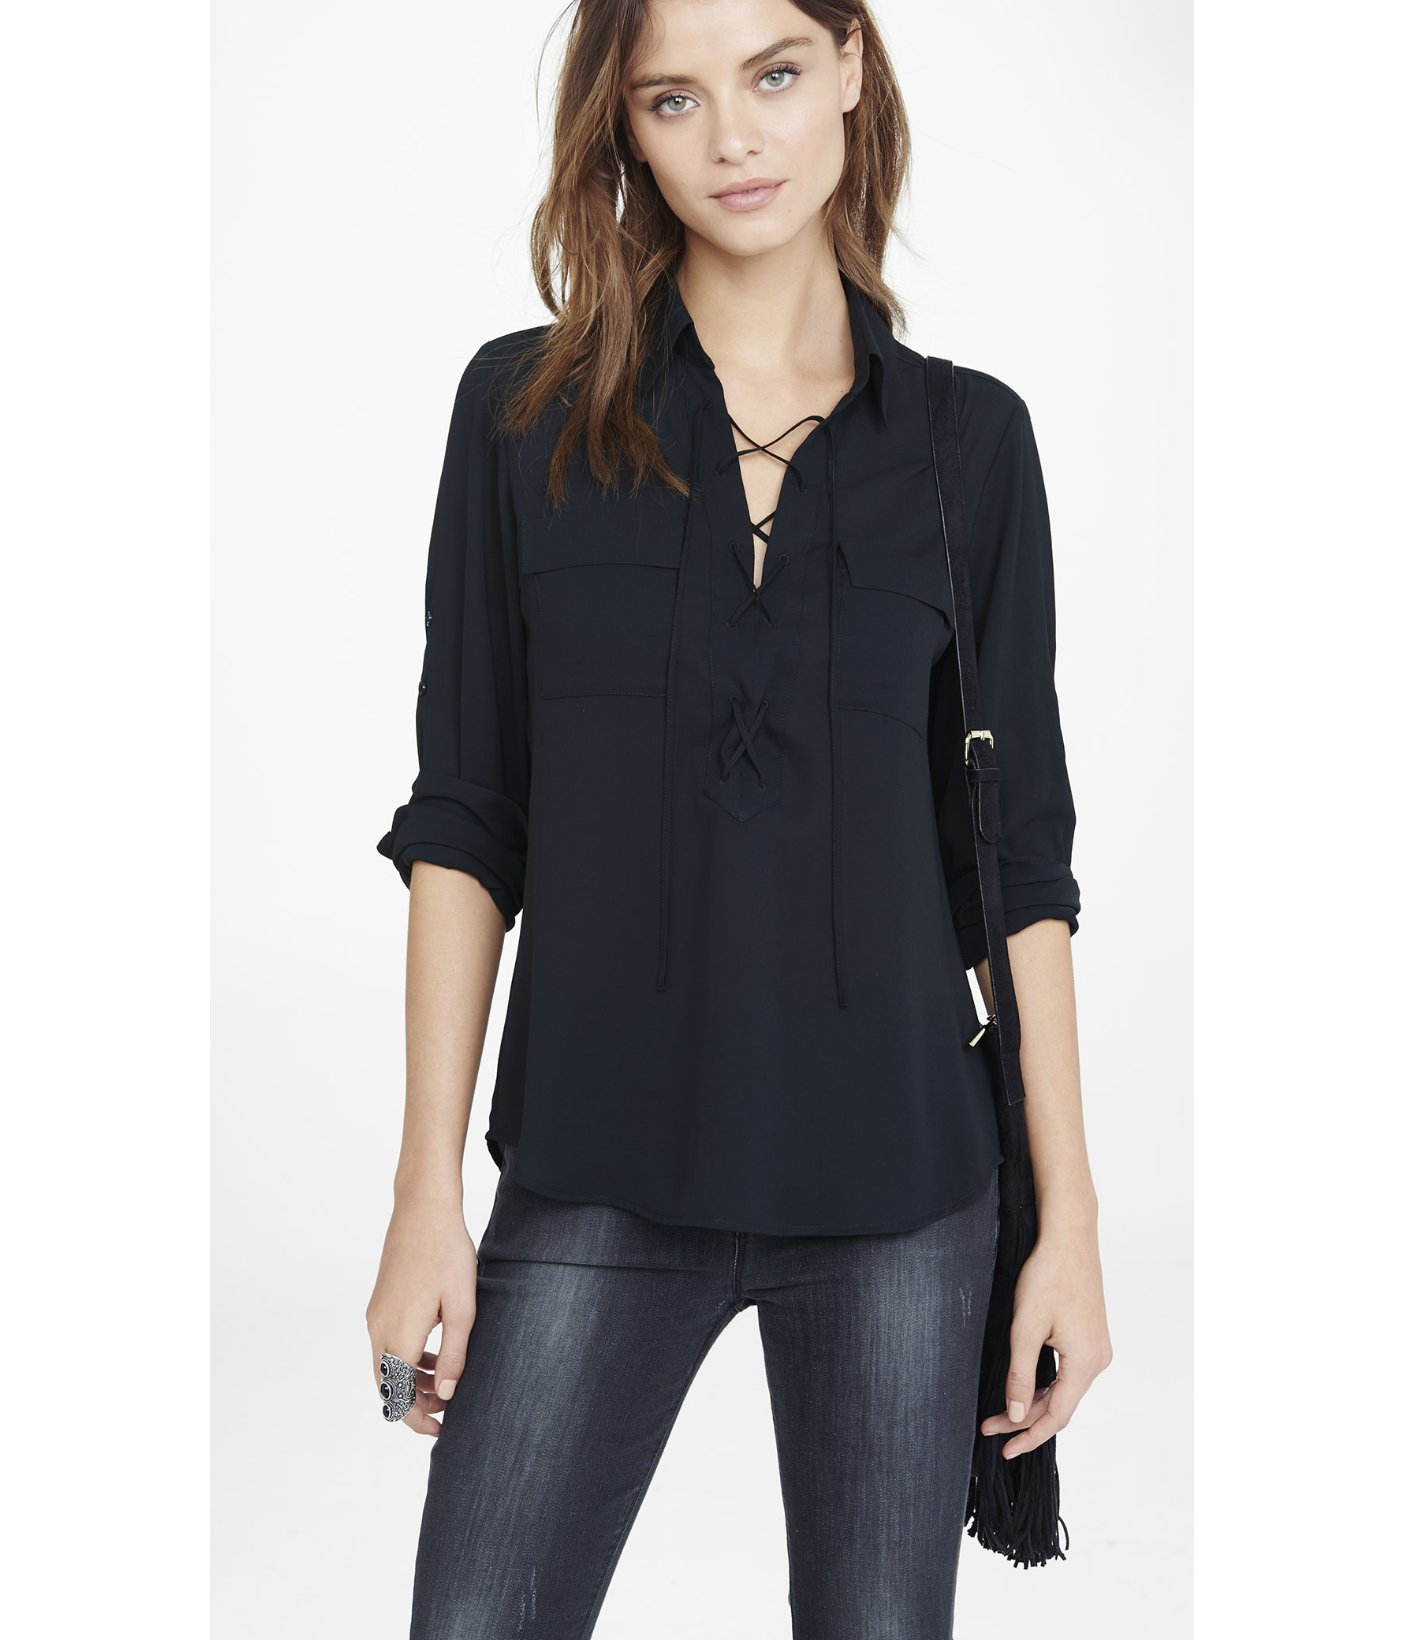 Express Lace Up Long Sleeve Blouse in Black | Lyst